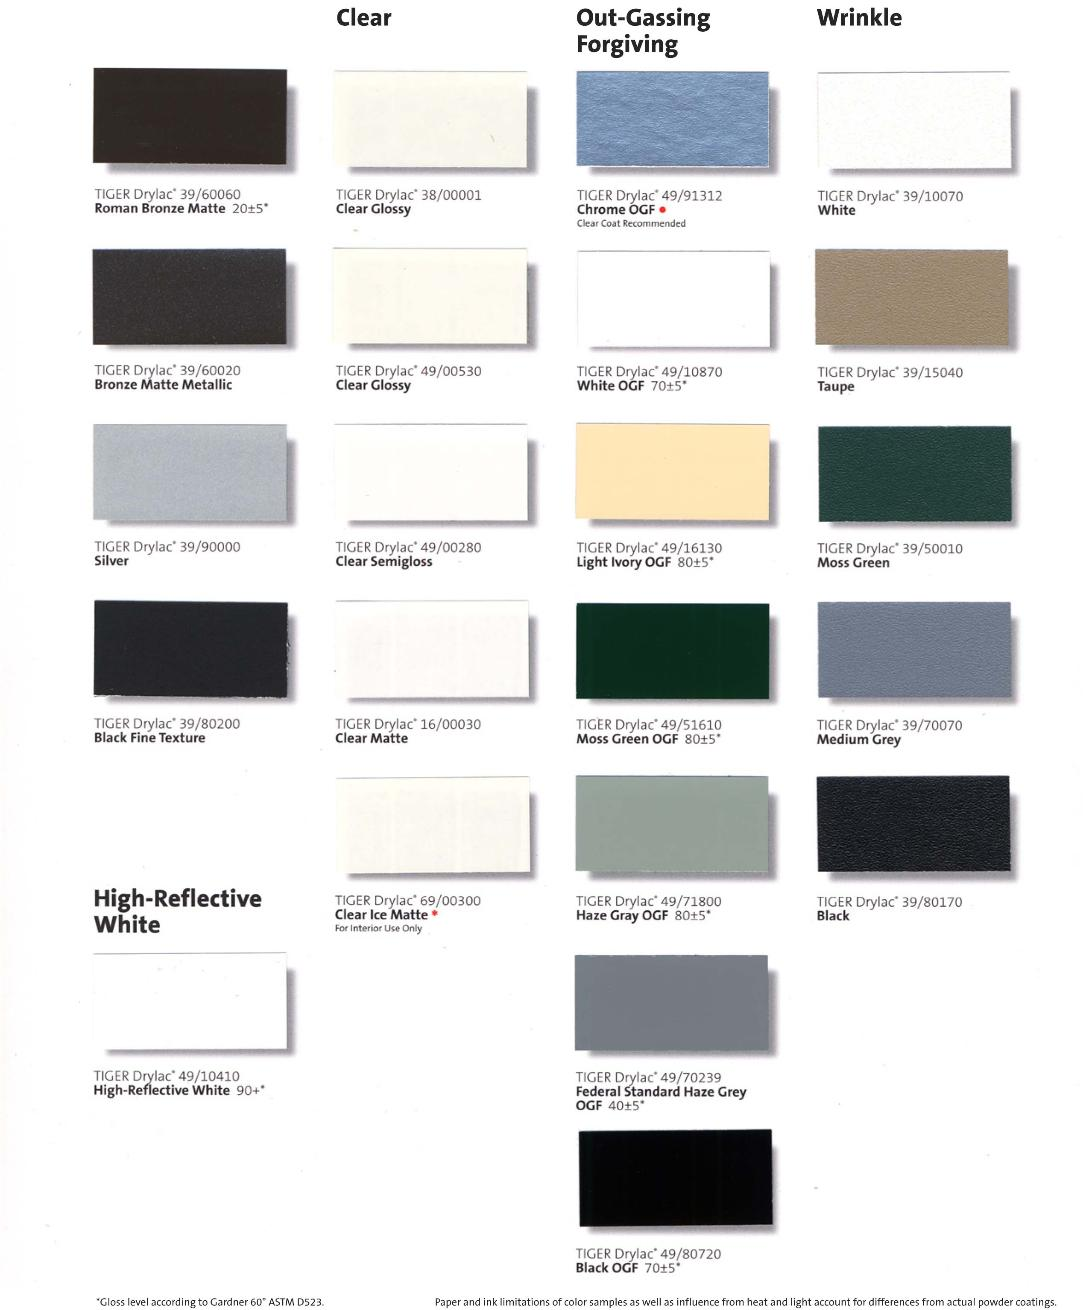 Tiger drylac ral powder coat swimming pool electrical wiring types tiger drylac powder coatings colors the best tiger of 2018 tigerdrylaccolorchart17 1089x1310 tiger drylac powder coatings colors tiger drylac ral powder nvjuhfo Images